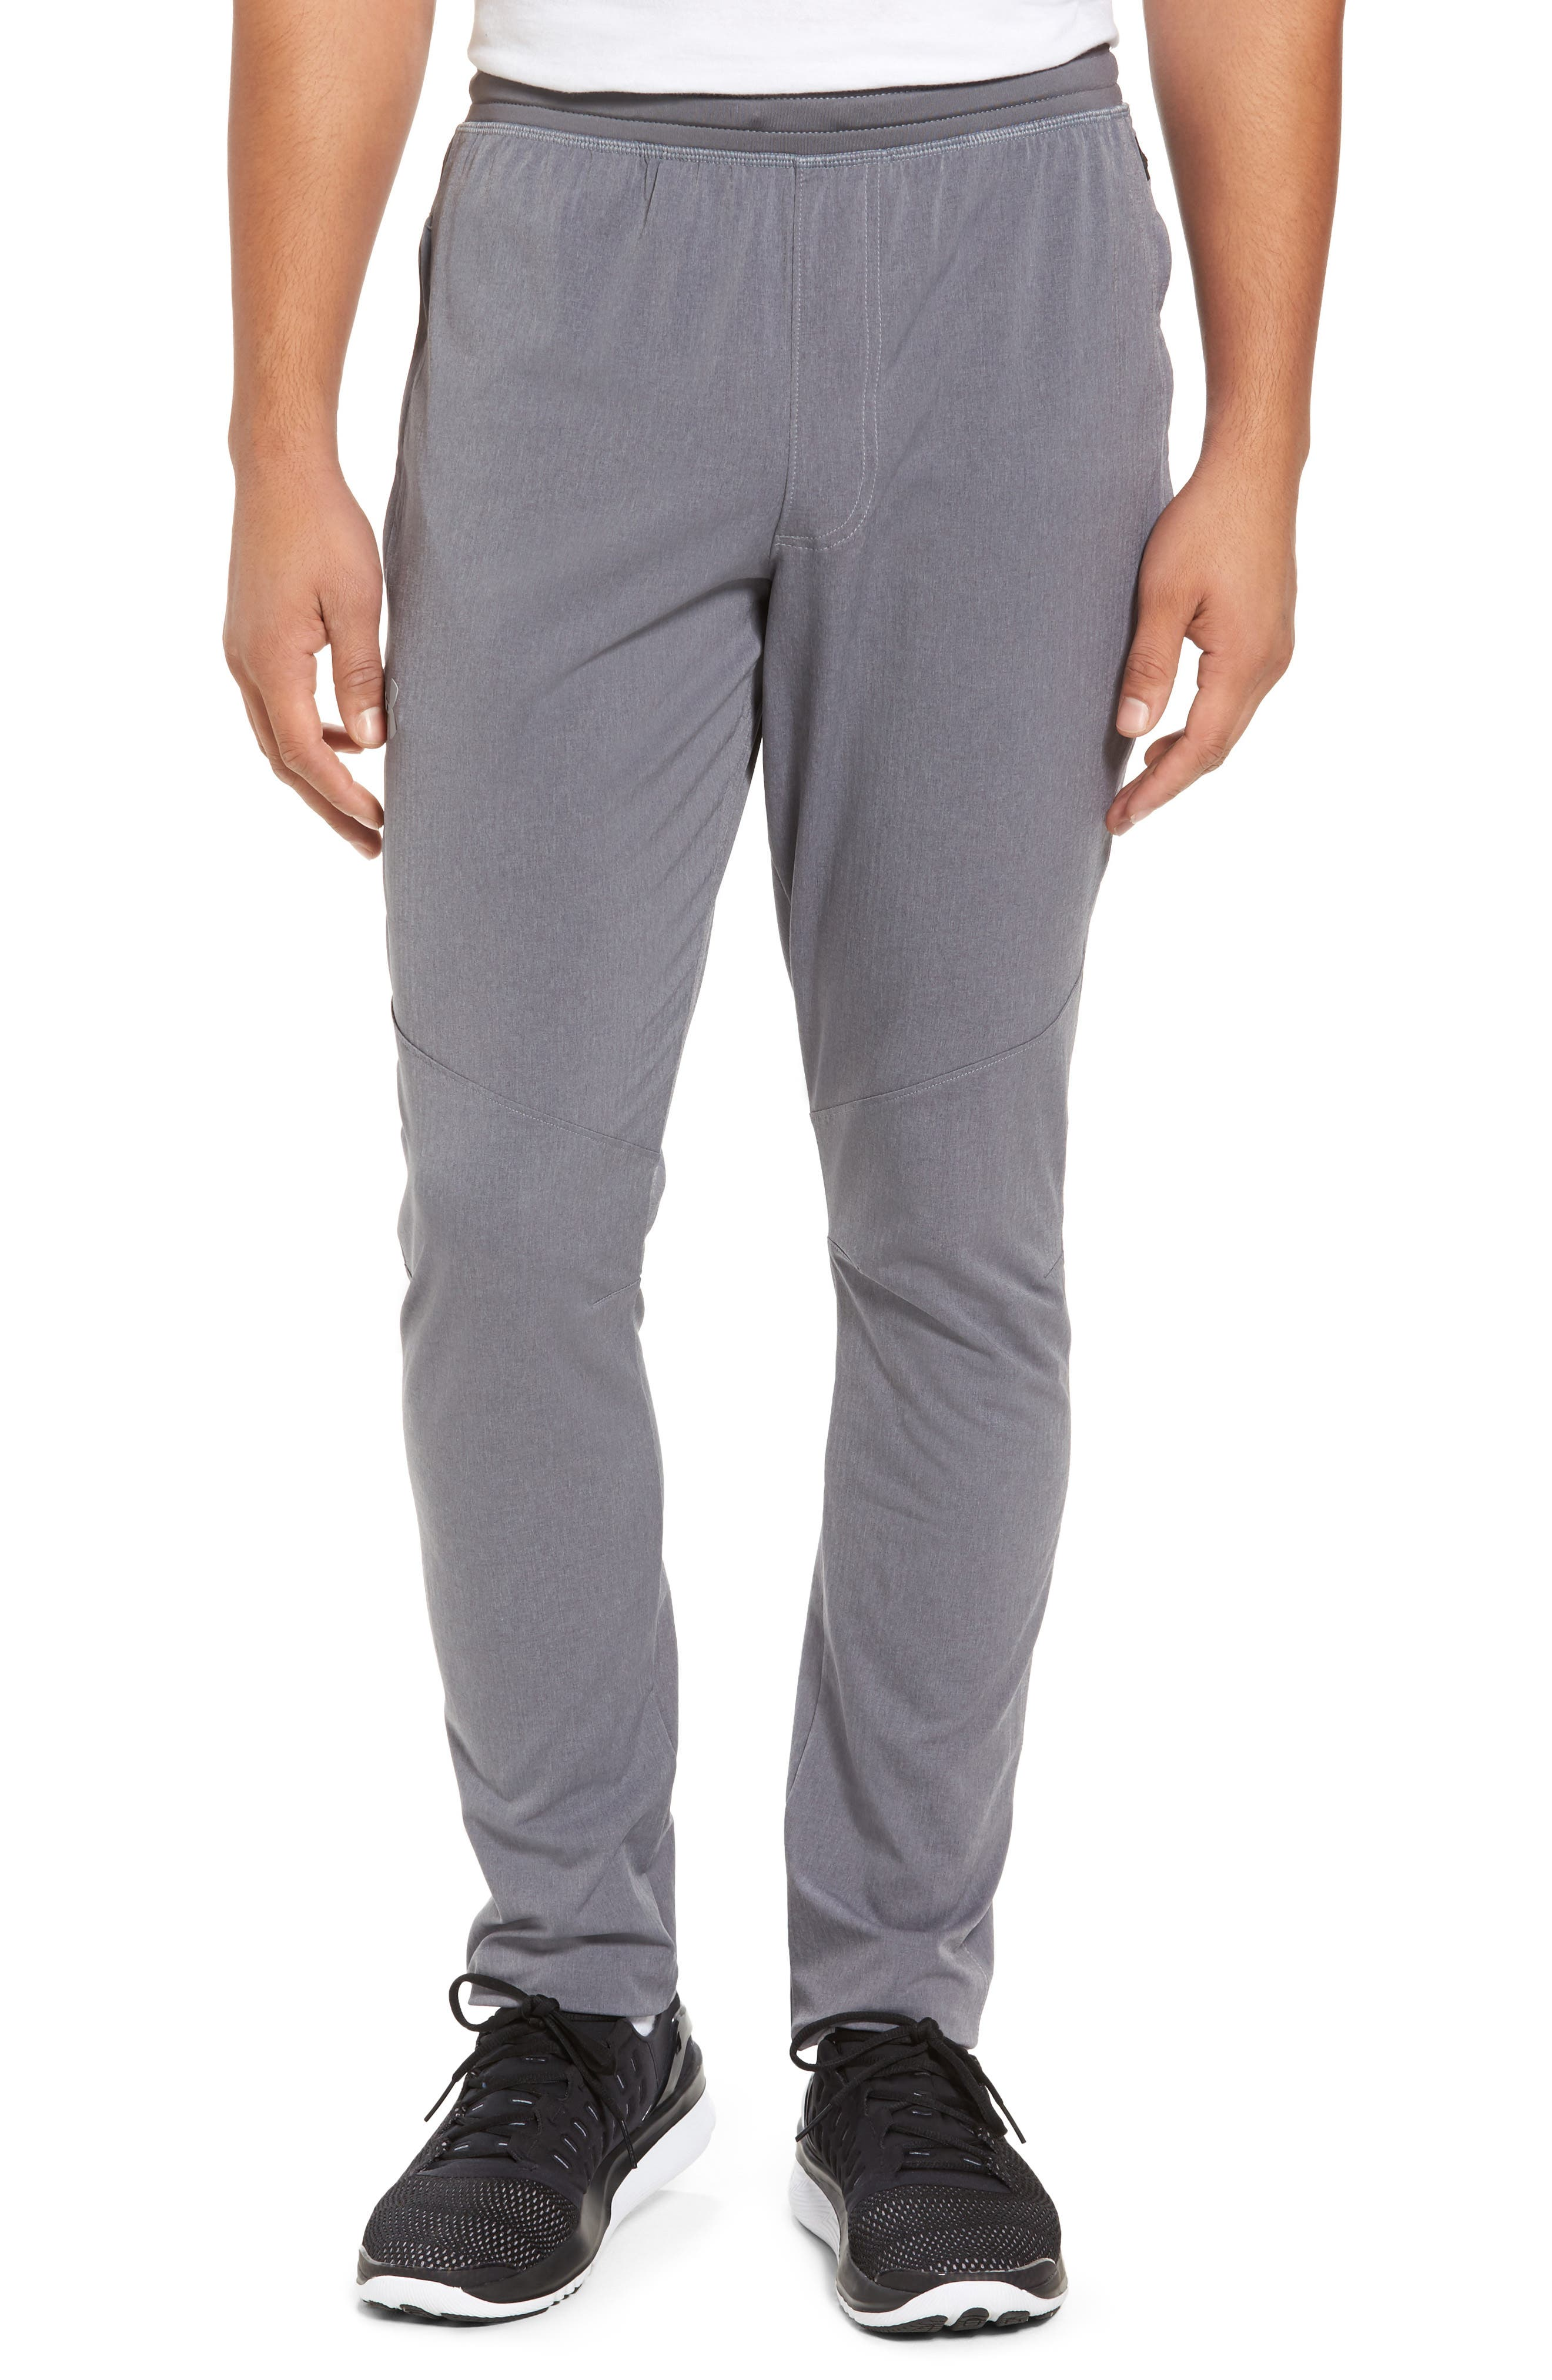 Fitted Woven Training Pants,                         Main,                         color, Grey Heather / Black / Steel